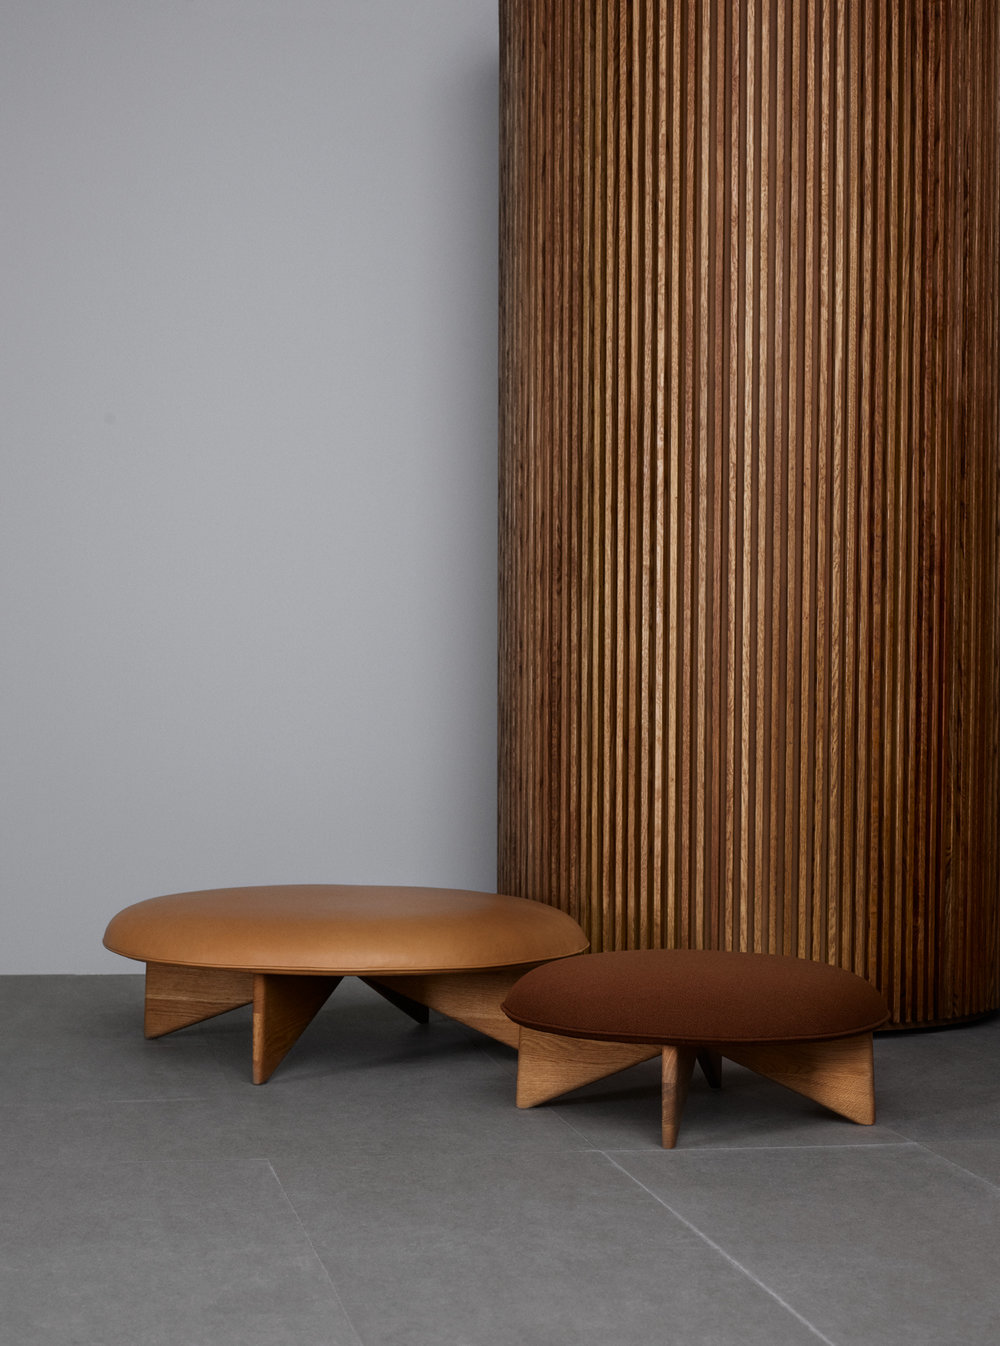 The Fogia 'Utility' pouf features a strong rocket fin motif in the base but this fifties look is tempered by the use of solid wood and soft mushroom-shaped upholstery.